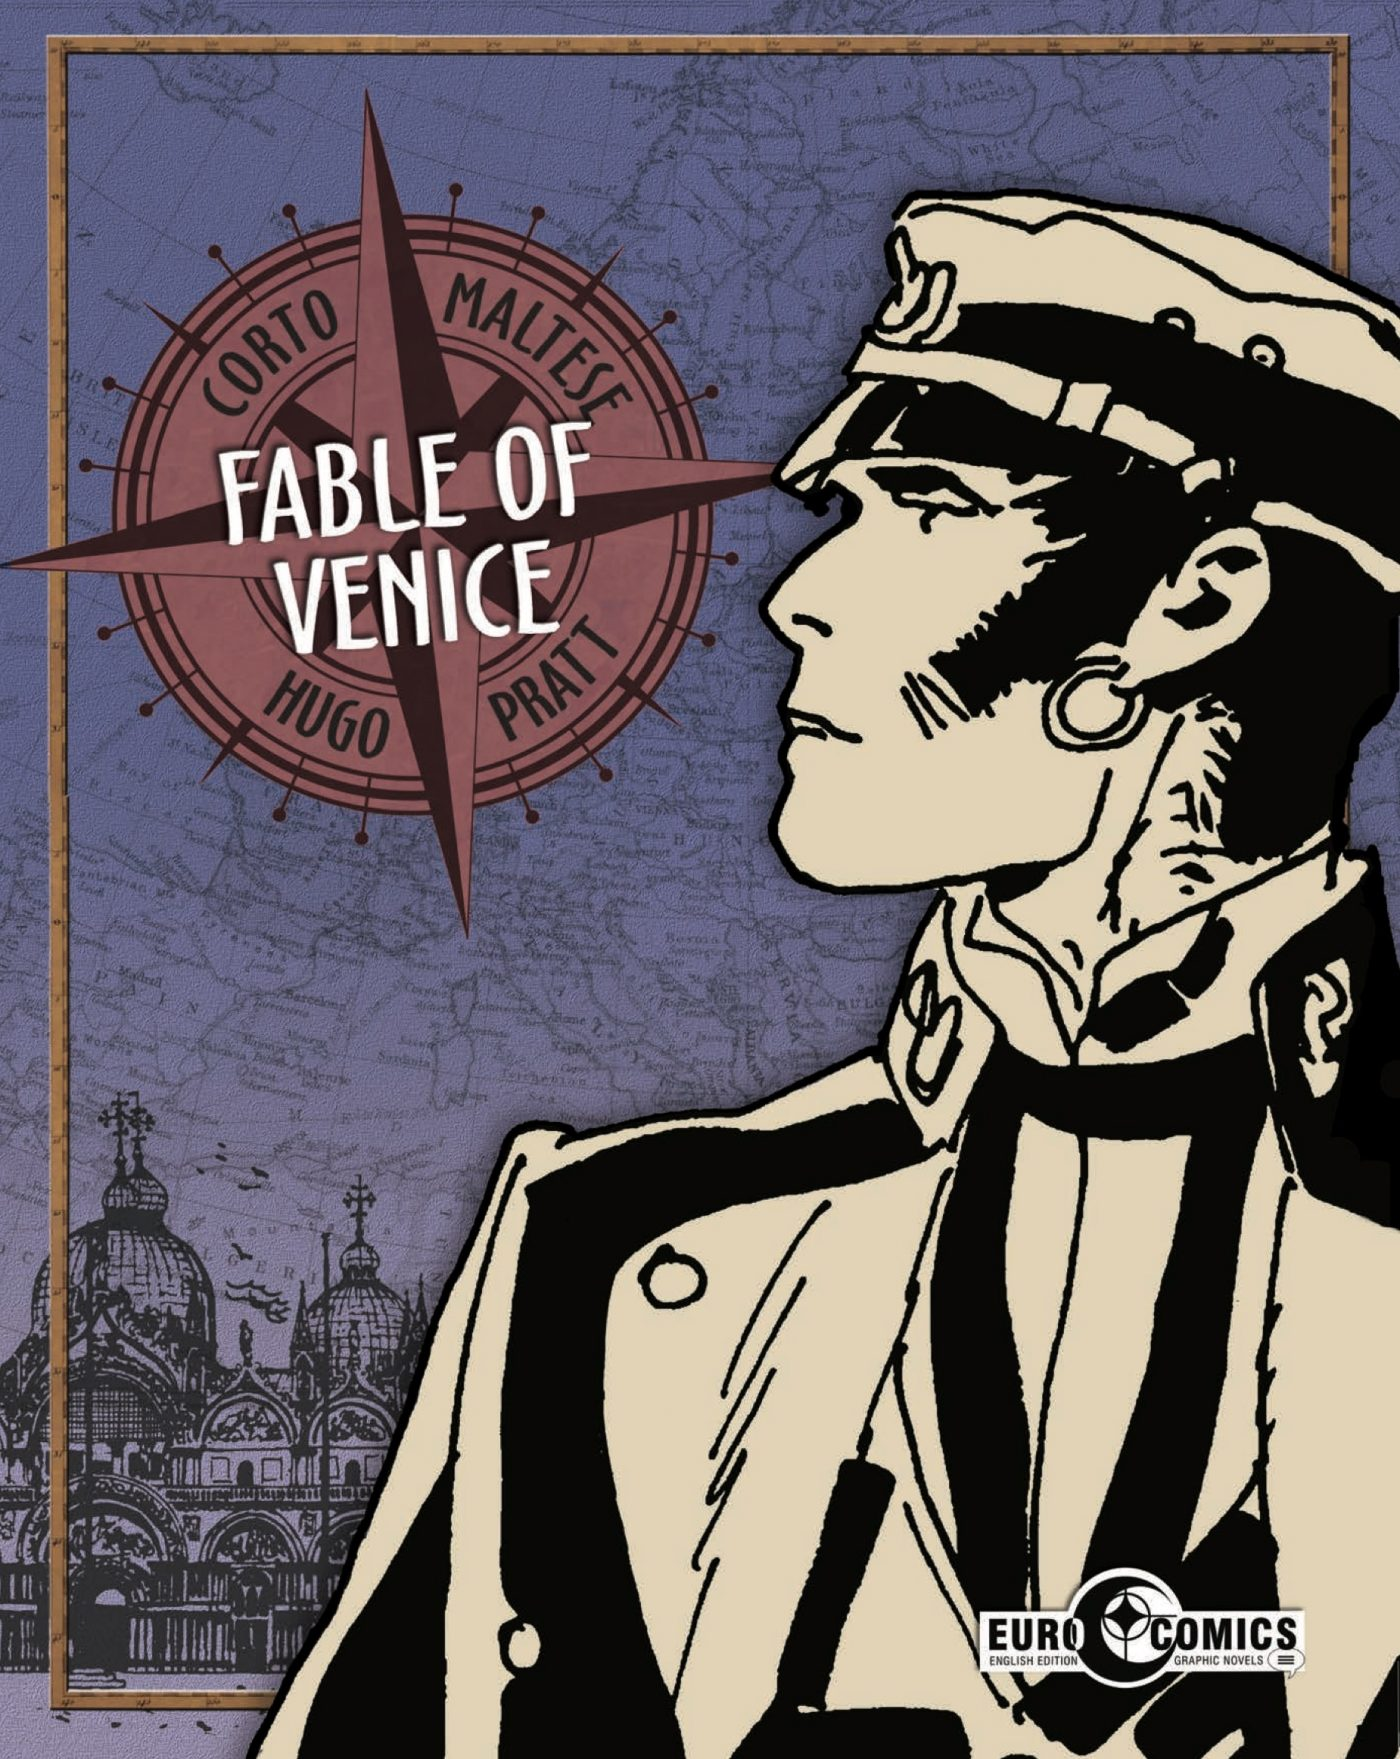 [EXCLUSIVE] IDW Preview: Corto Maltese: Fable of Venice